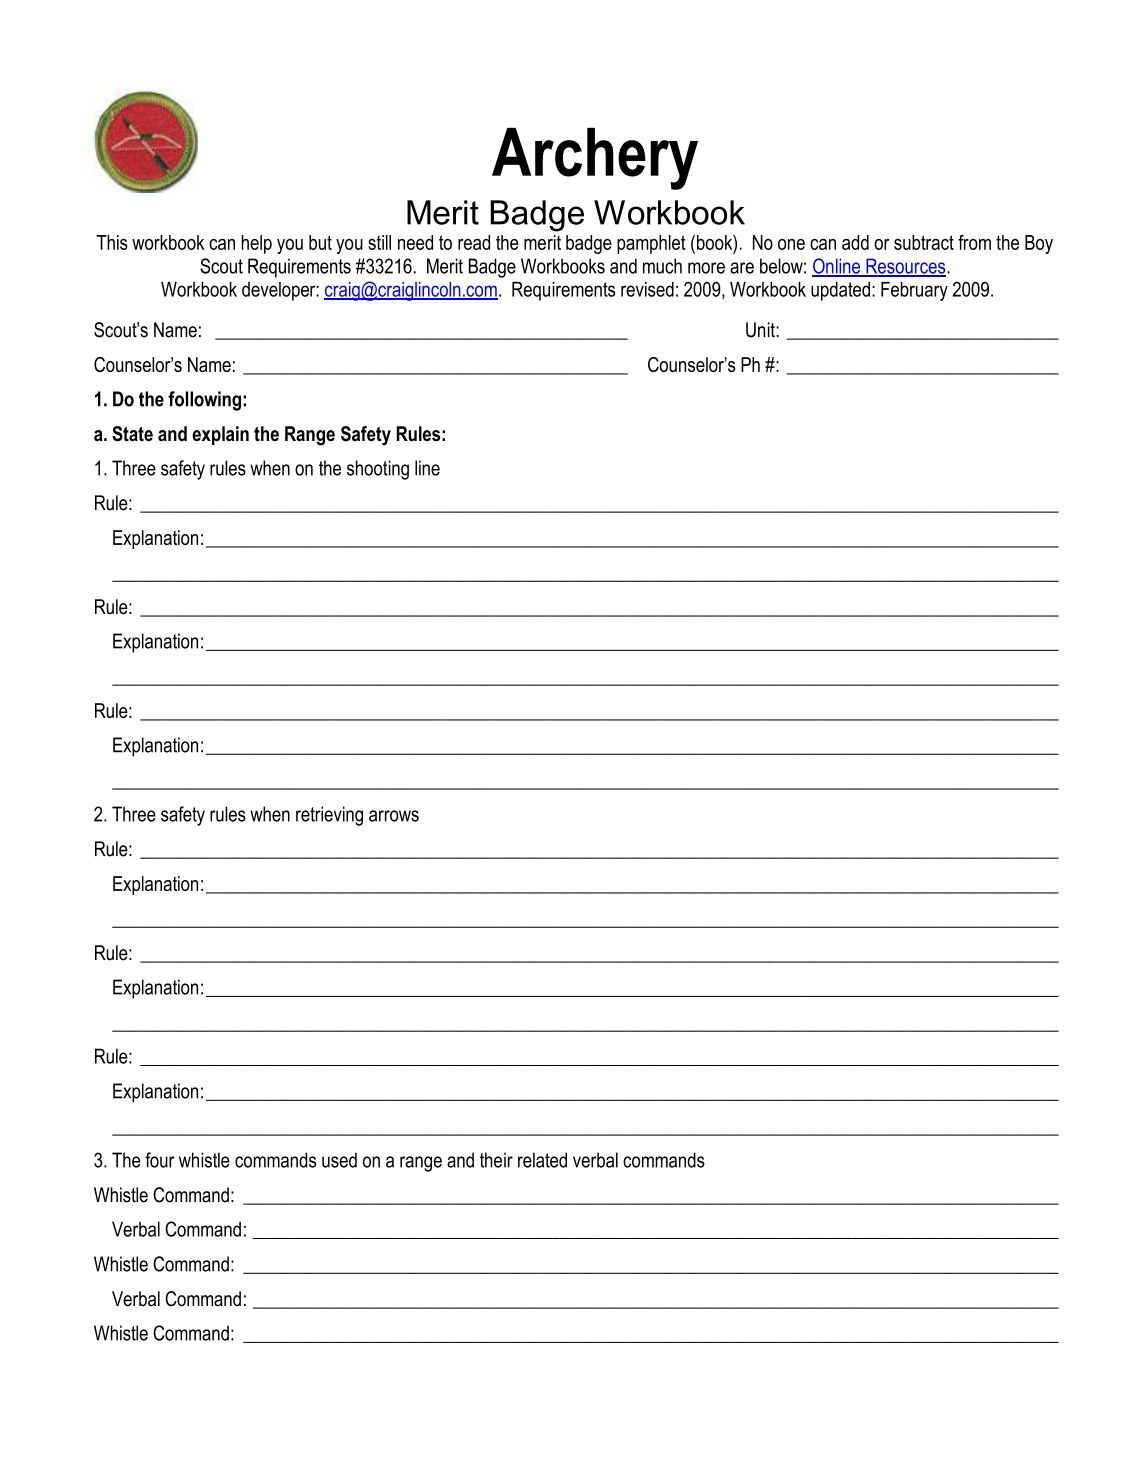 Search And Rescue Merit Badge Worksheet – Family Life Merit Badge Worksheet